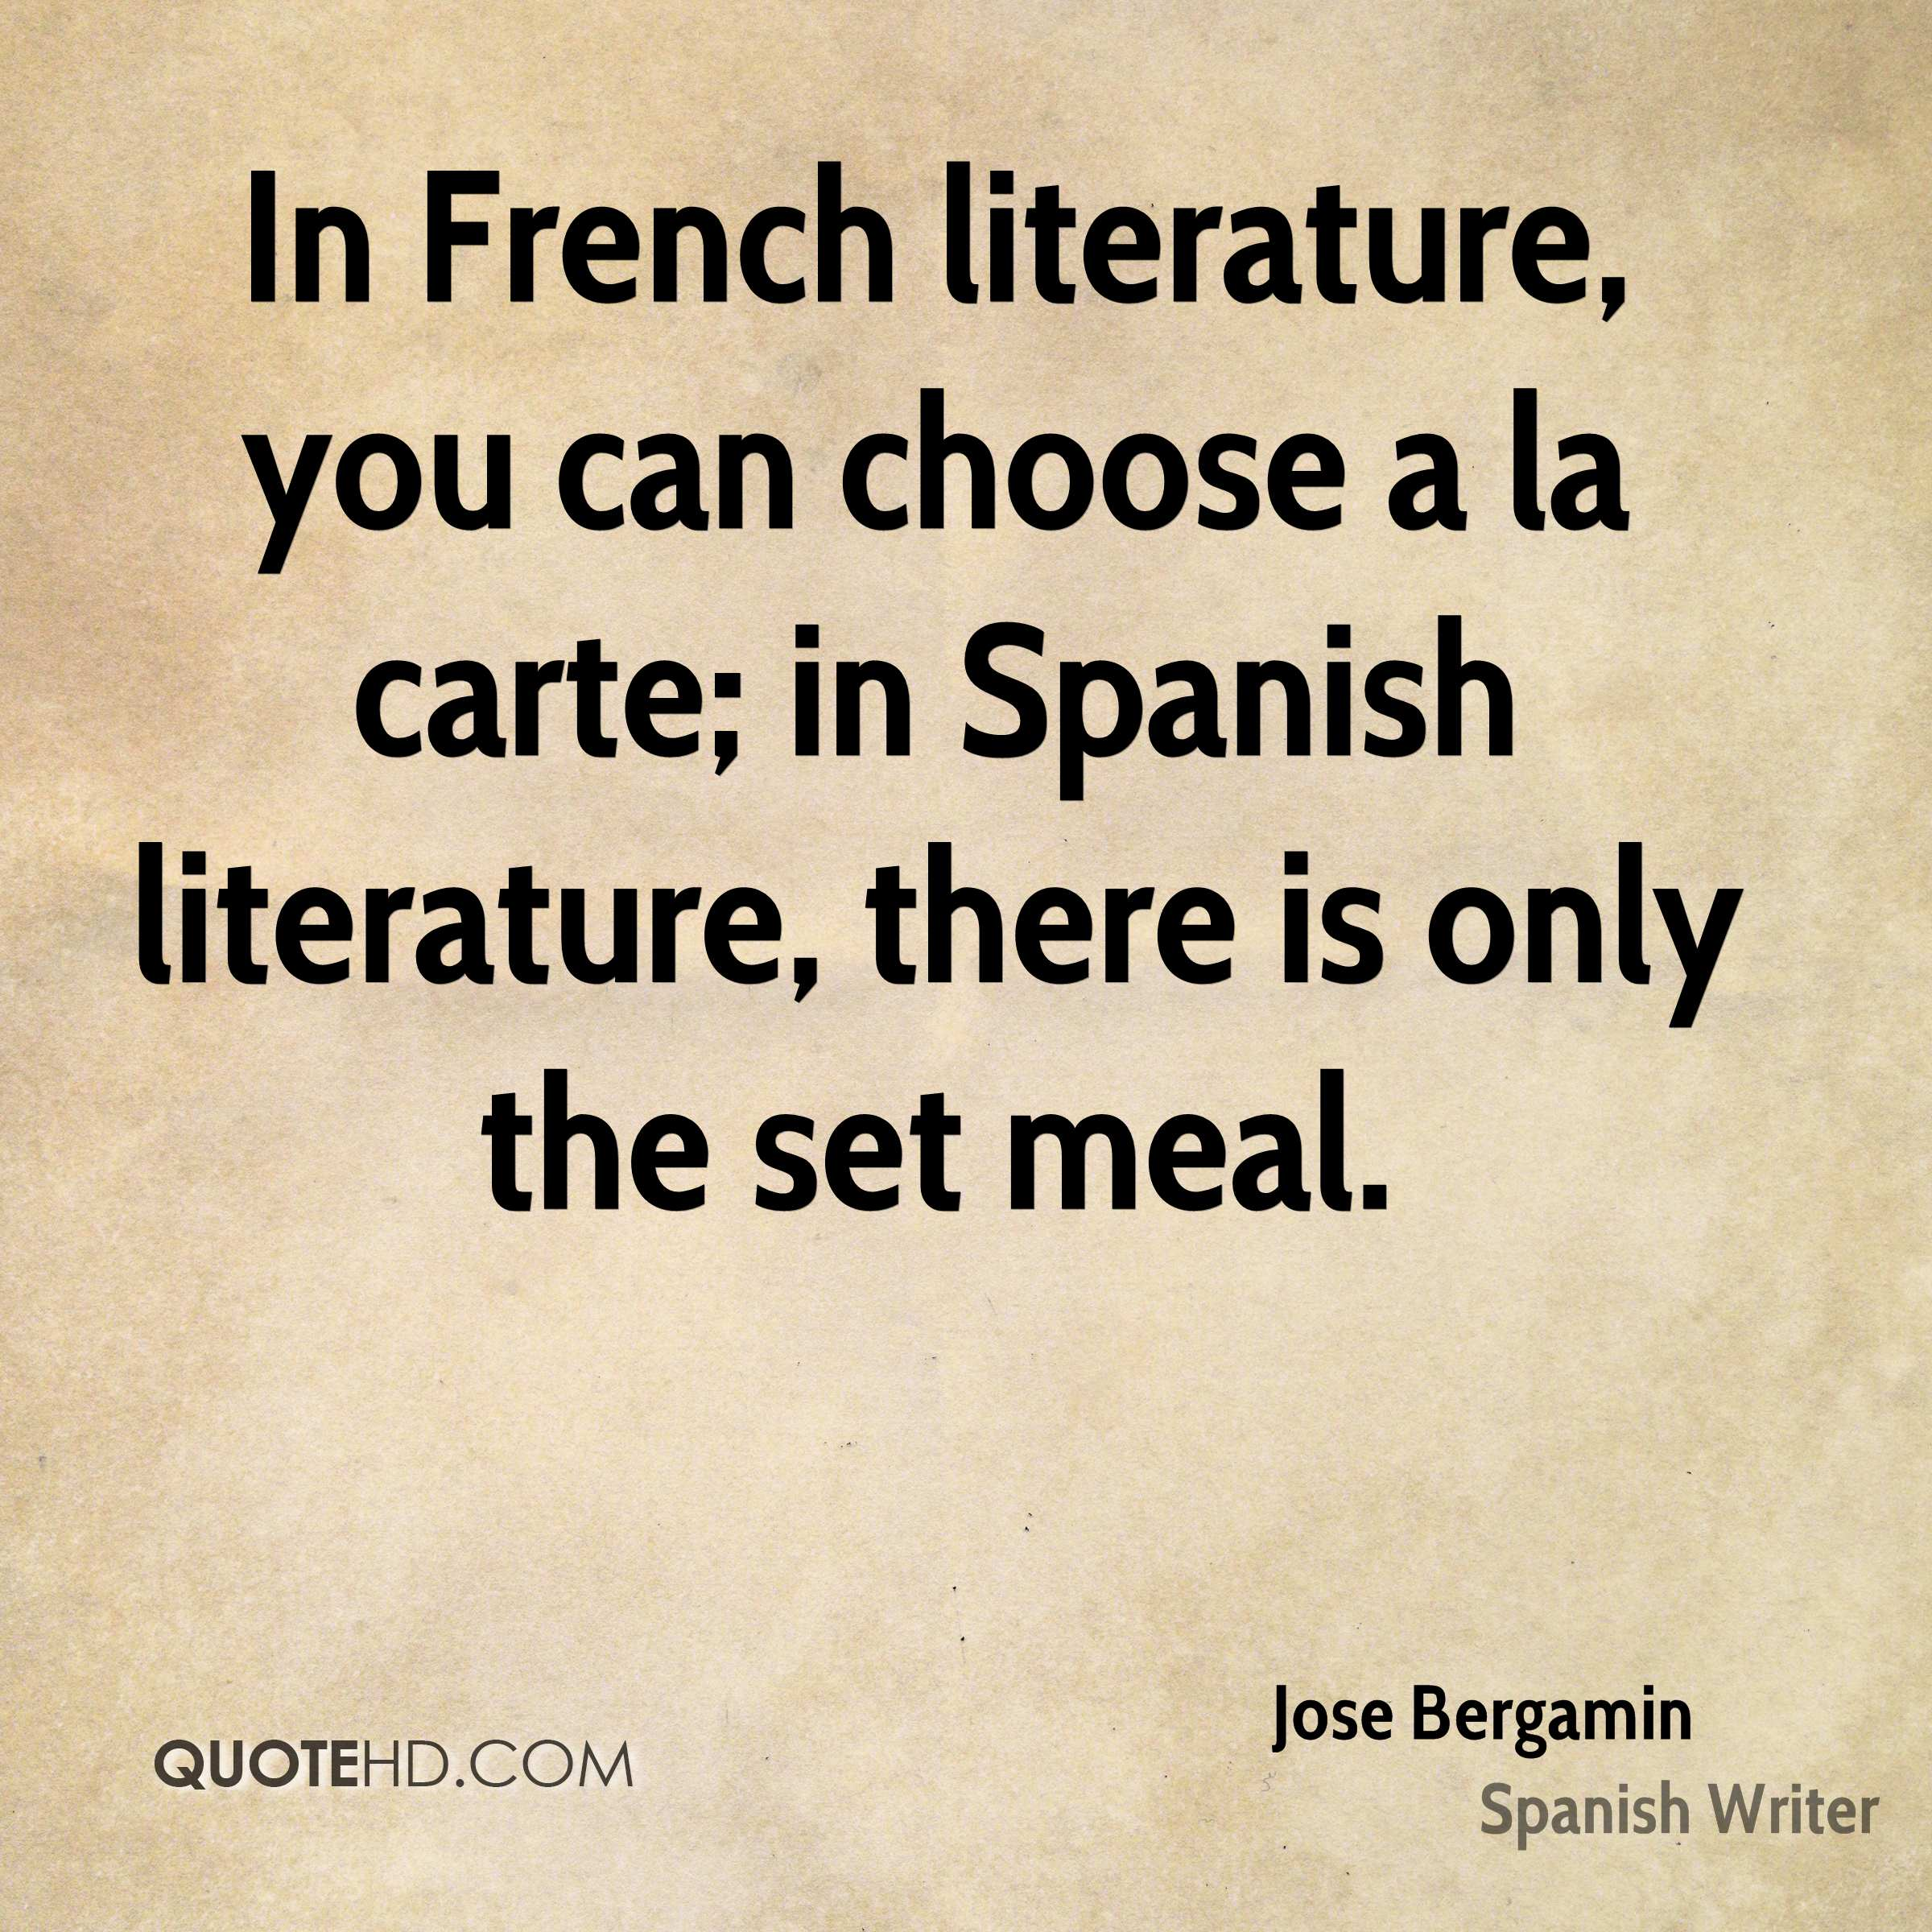 In French literature, you can choose a la carte; in Spanish literature, there is only the set meal.